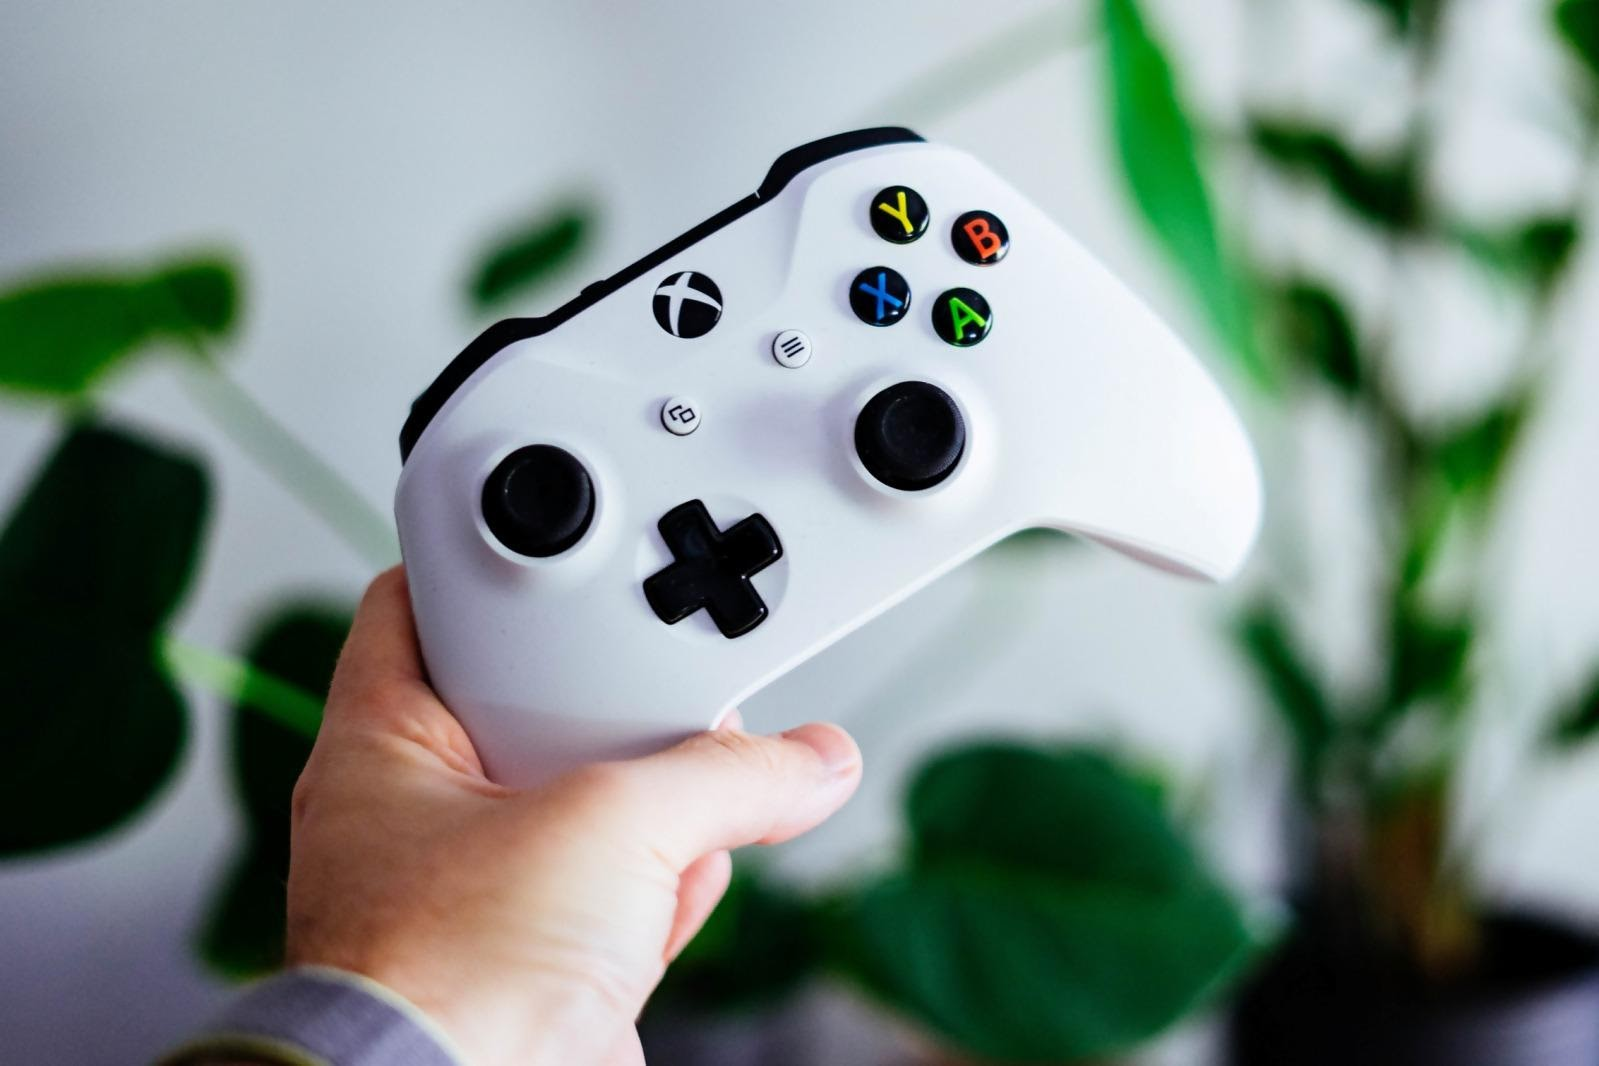 stock photo of a hand holding a white Xbox One controller with a blurred green plant in the background